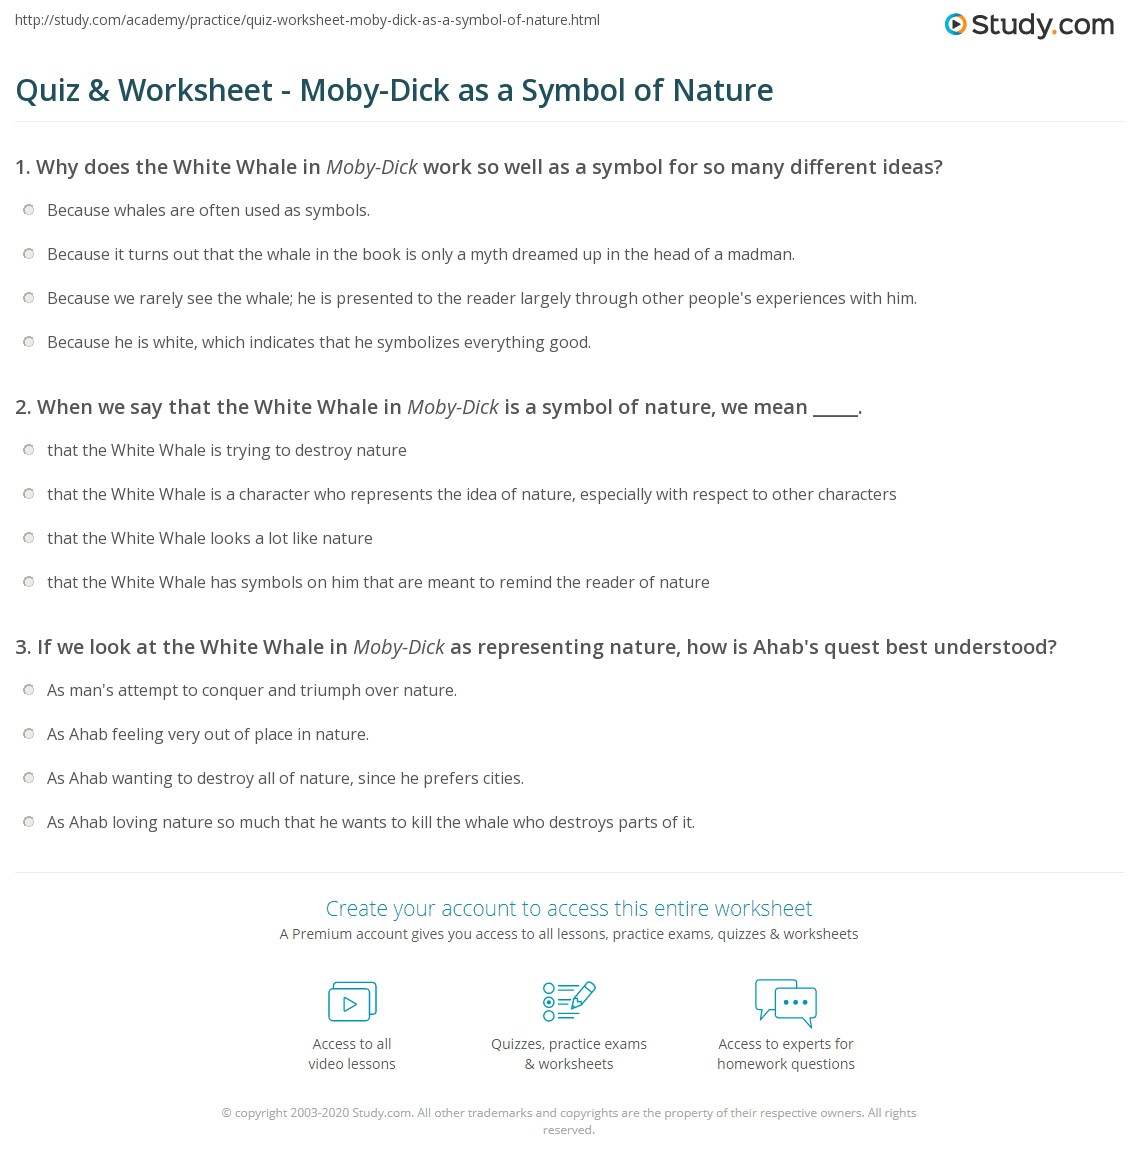 Quiz worksheet moby dick as a symbol of nature study print moby dick as a symbol of nature worksheet biocorpaavc Choice Image